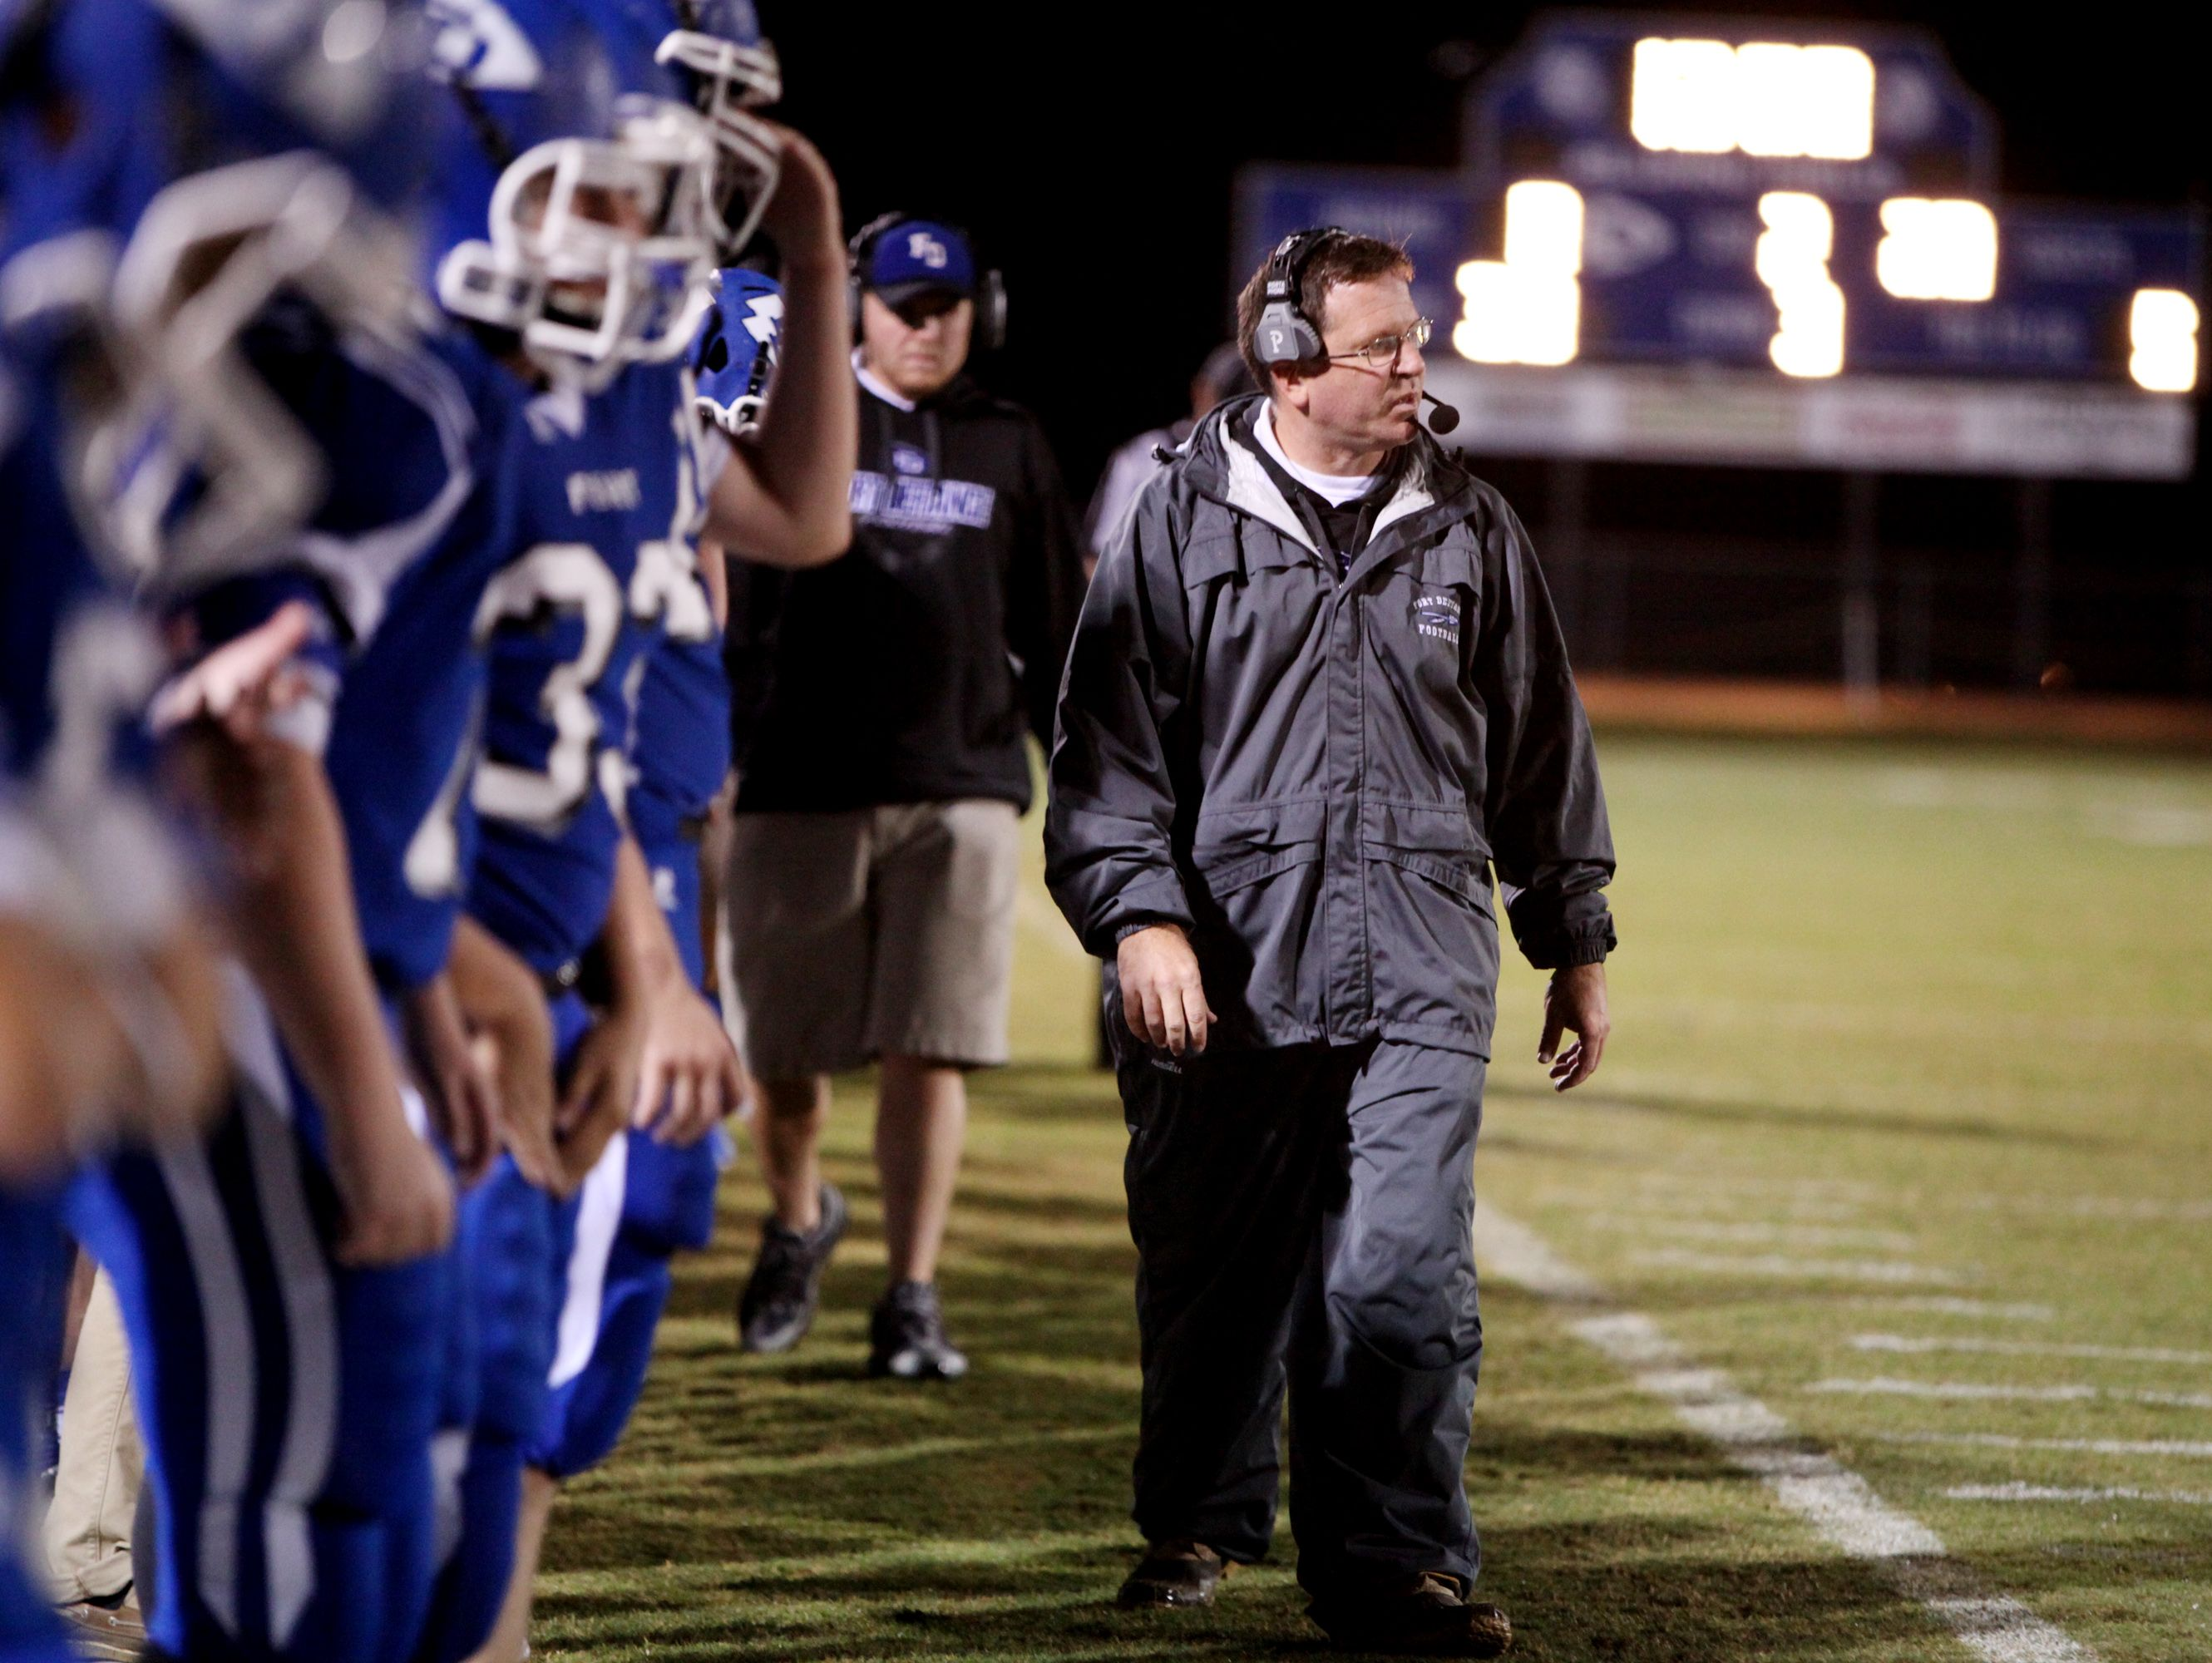 Fort Defiance head coach Dan Rolfe moves down field during the second quarter of the game against Harrisonburg on Friday, Oct. 21, 2016 at Fort Defiance.